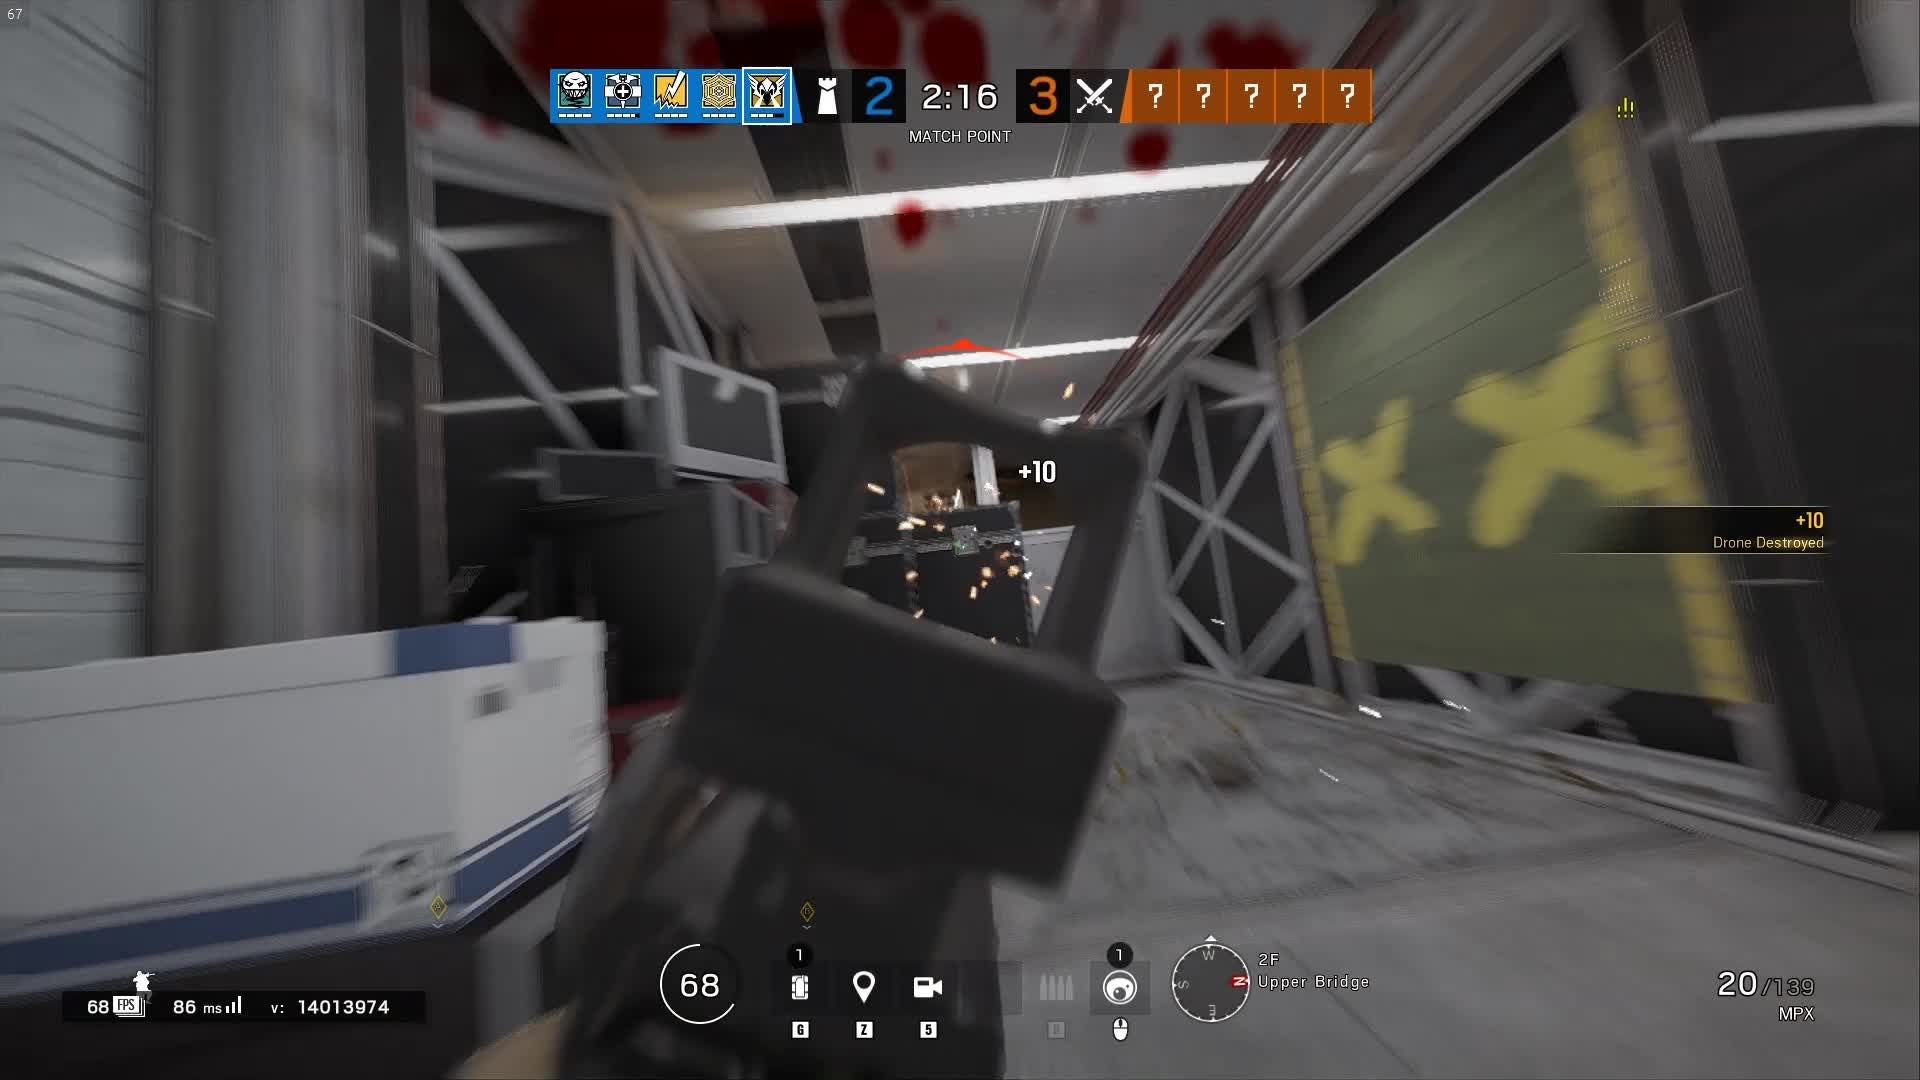 Rainbow Six: Memes - He didn't see that coming video cover image 0